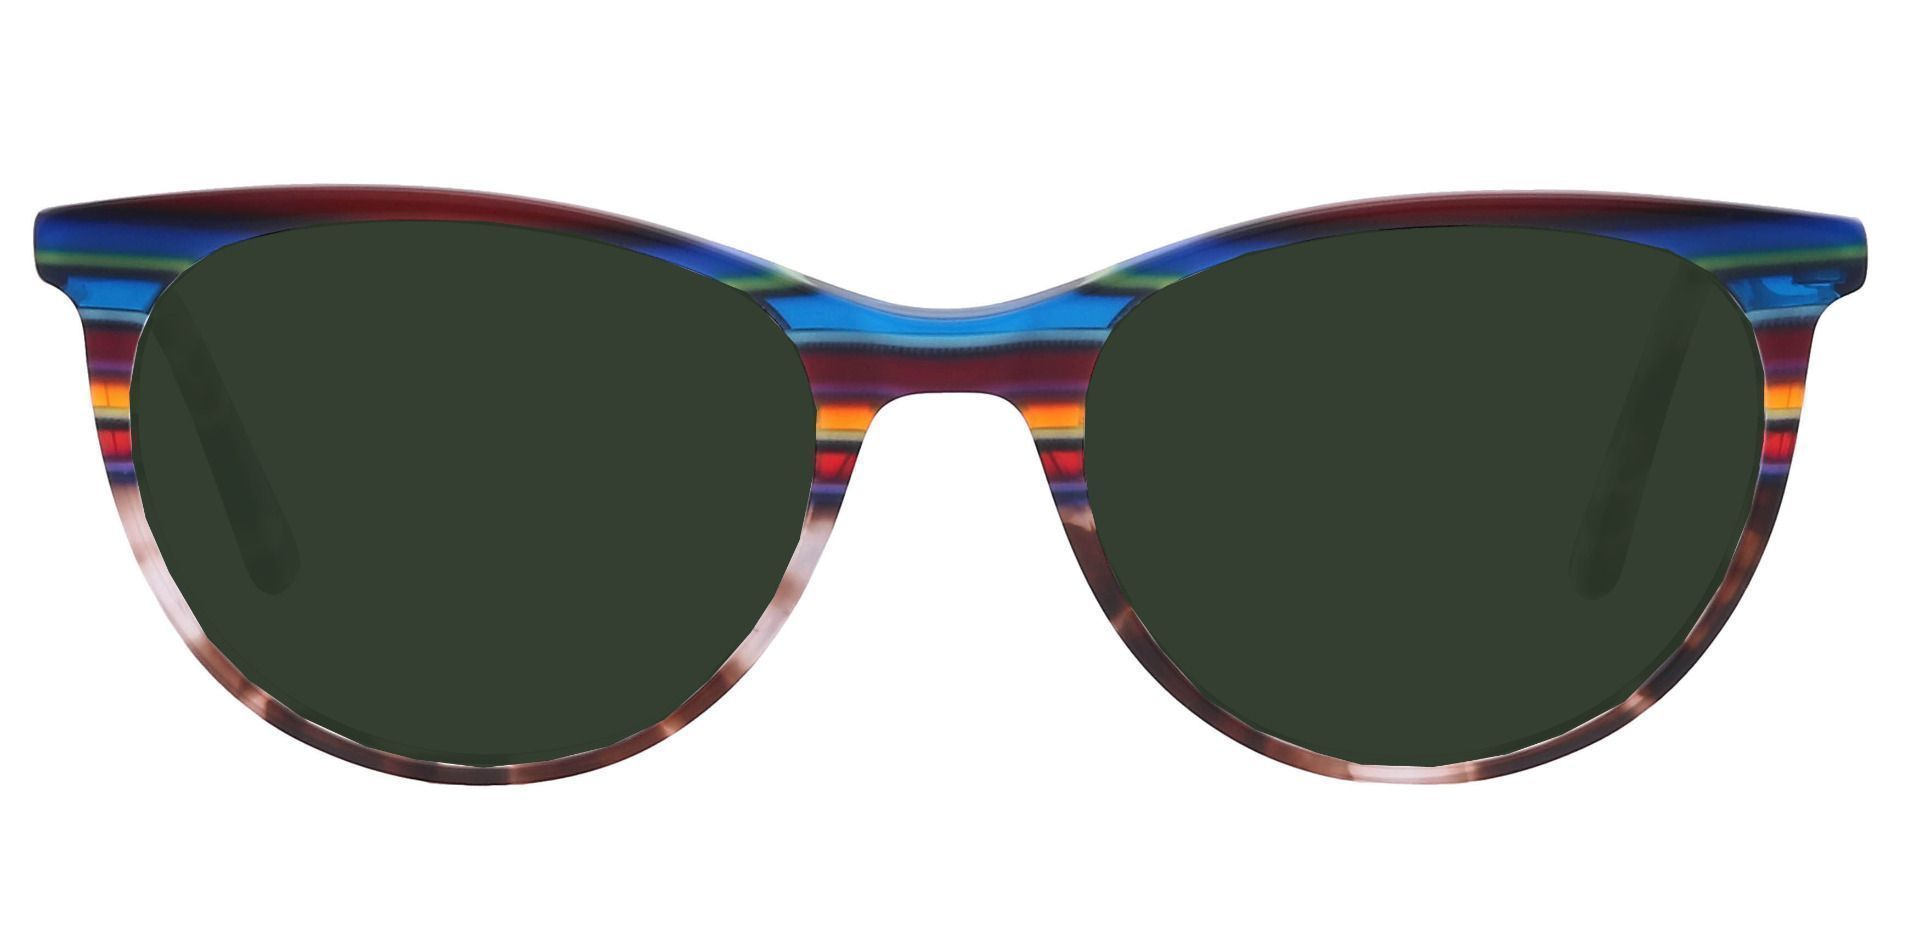 Patagonia Oval Reading Sunglasses - Blue Frame With Green Lenses